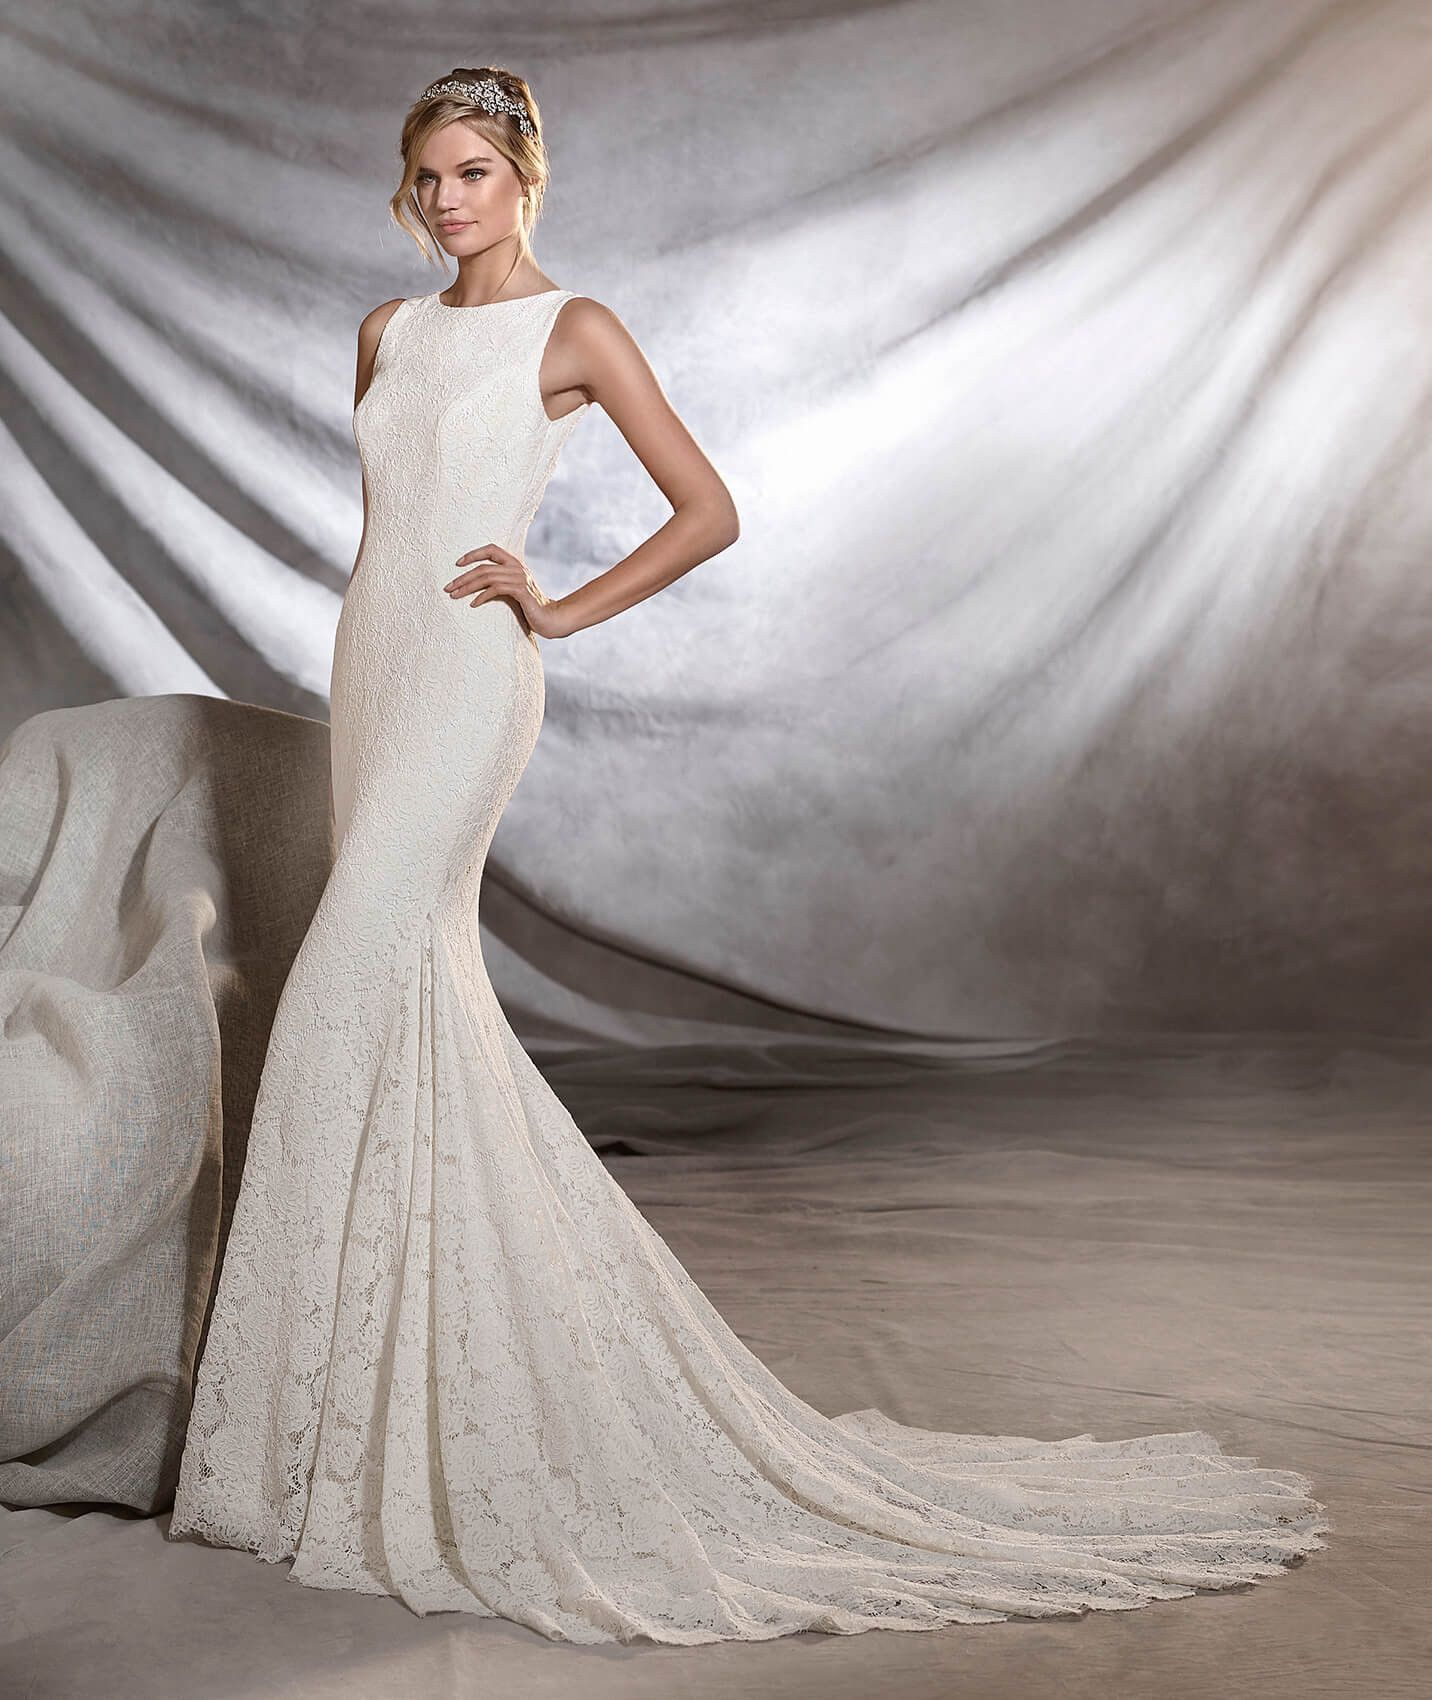 CCs Bridal Boutique Offers The Pronovias Wedding Dress Ornani At A Great Price Call Today To Verify Our Pricing And Availability For